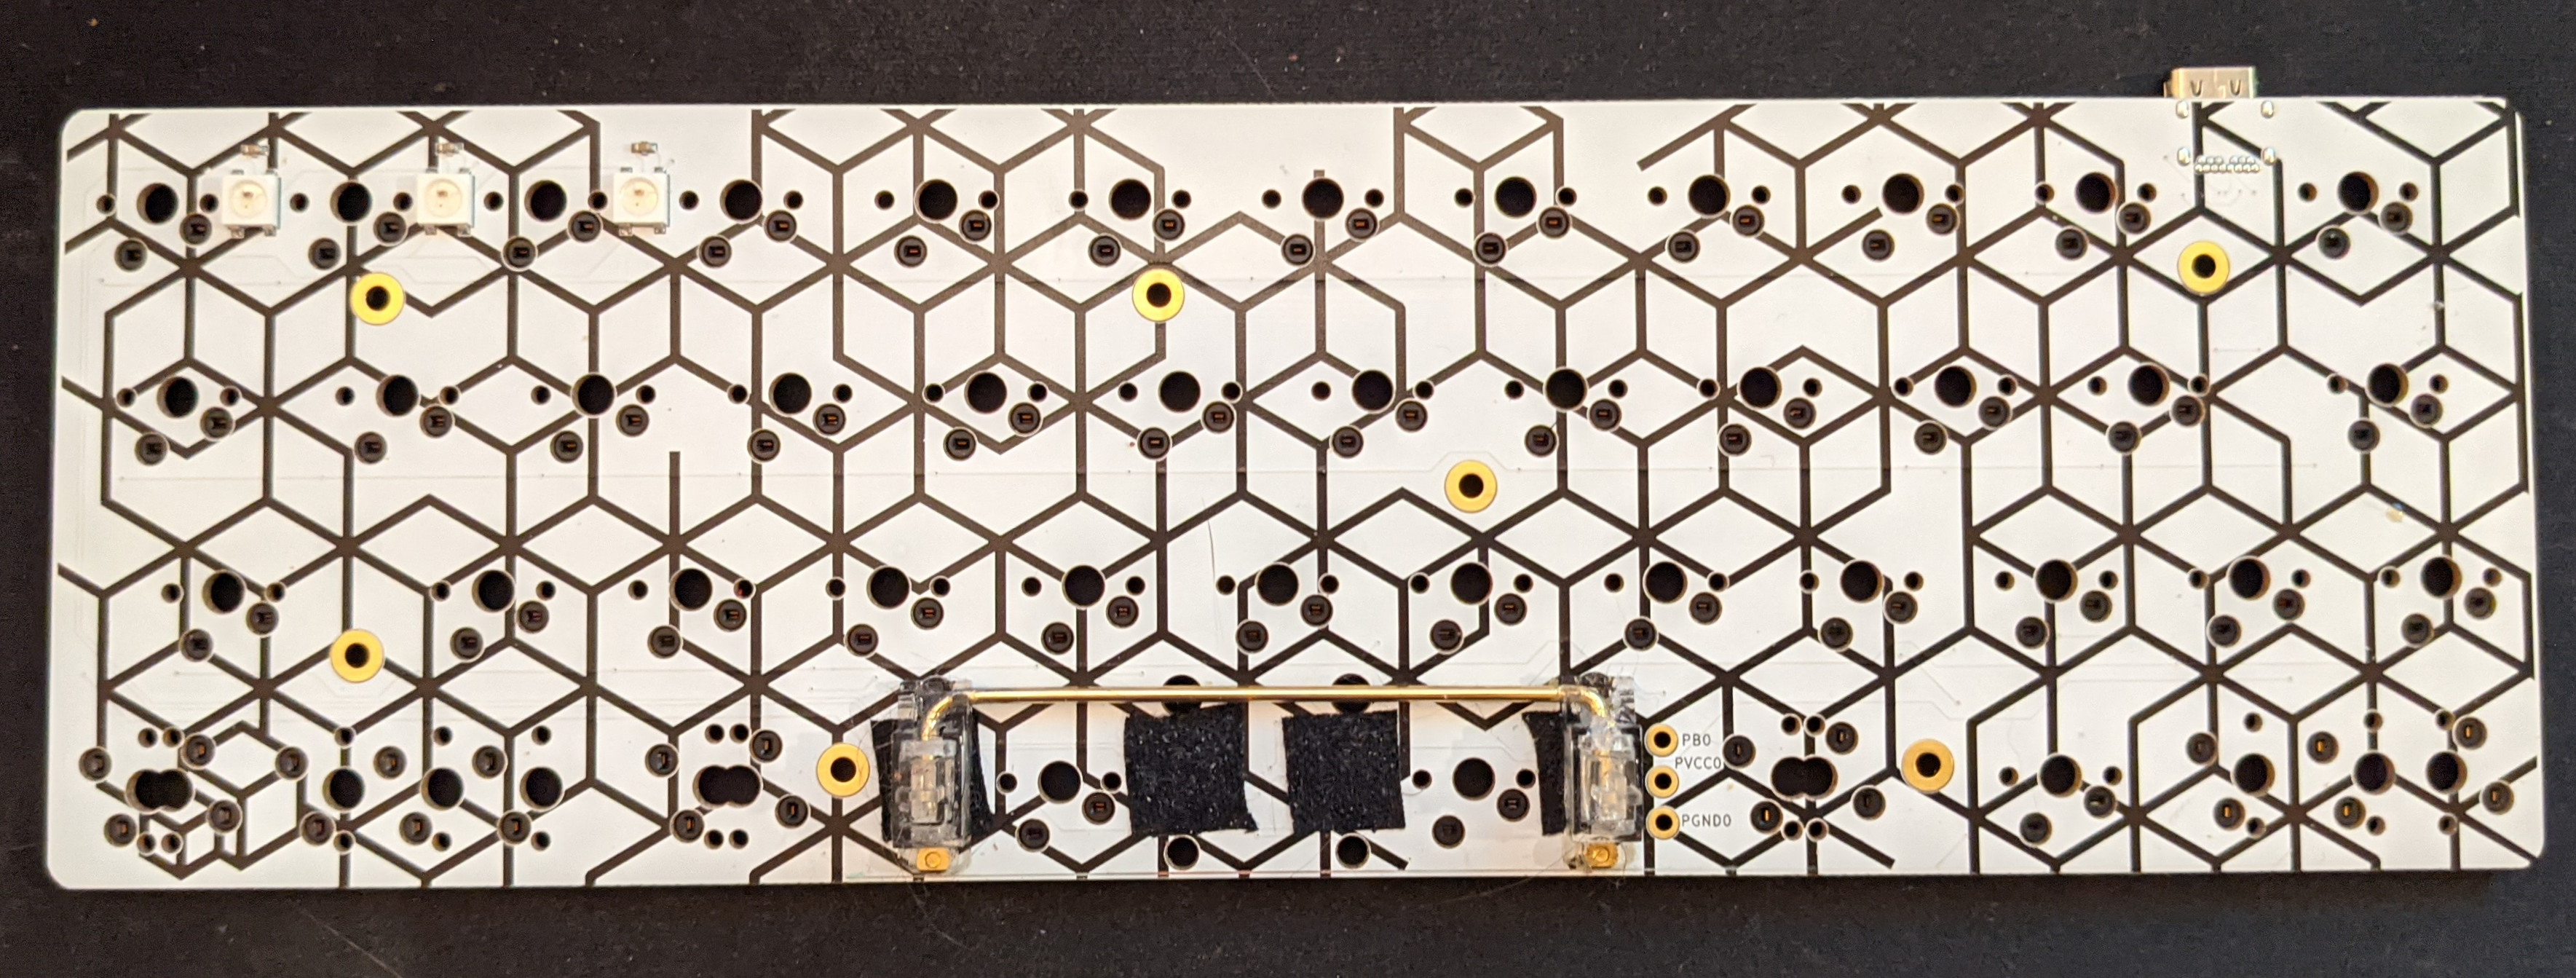 Front of the Catalyst PCB